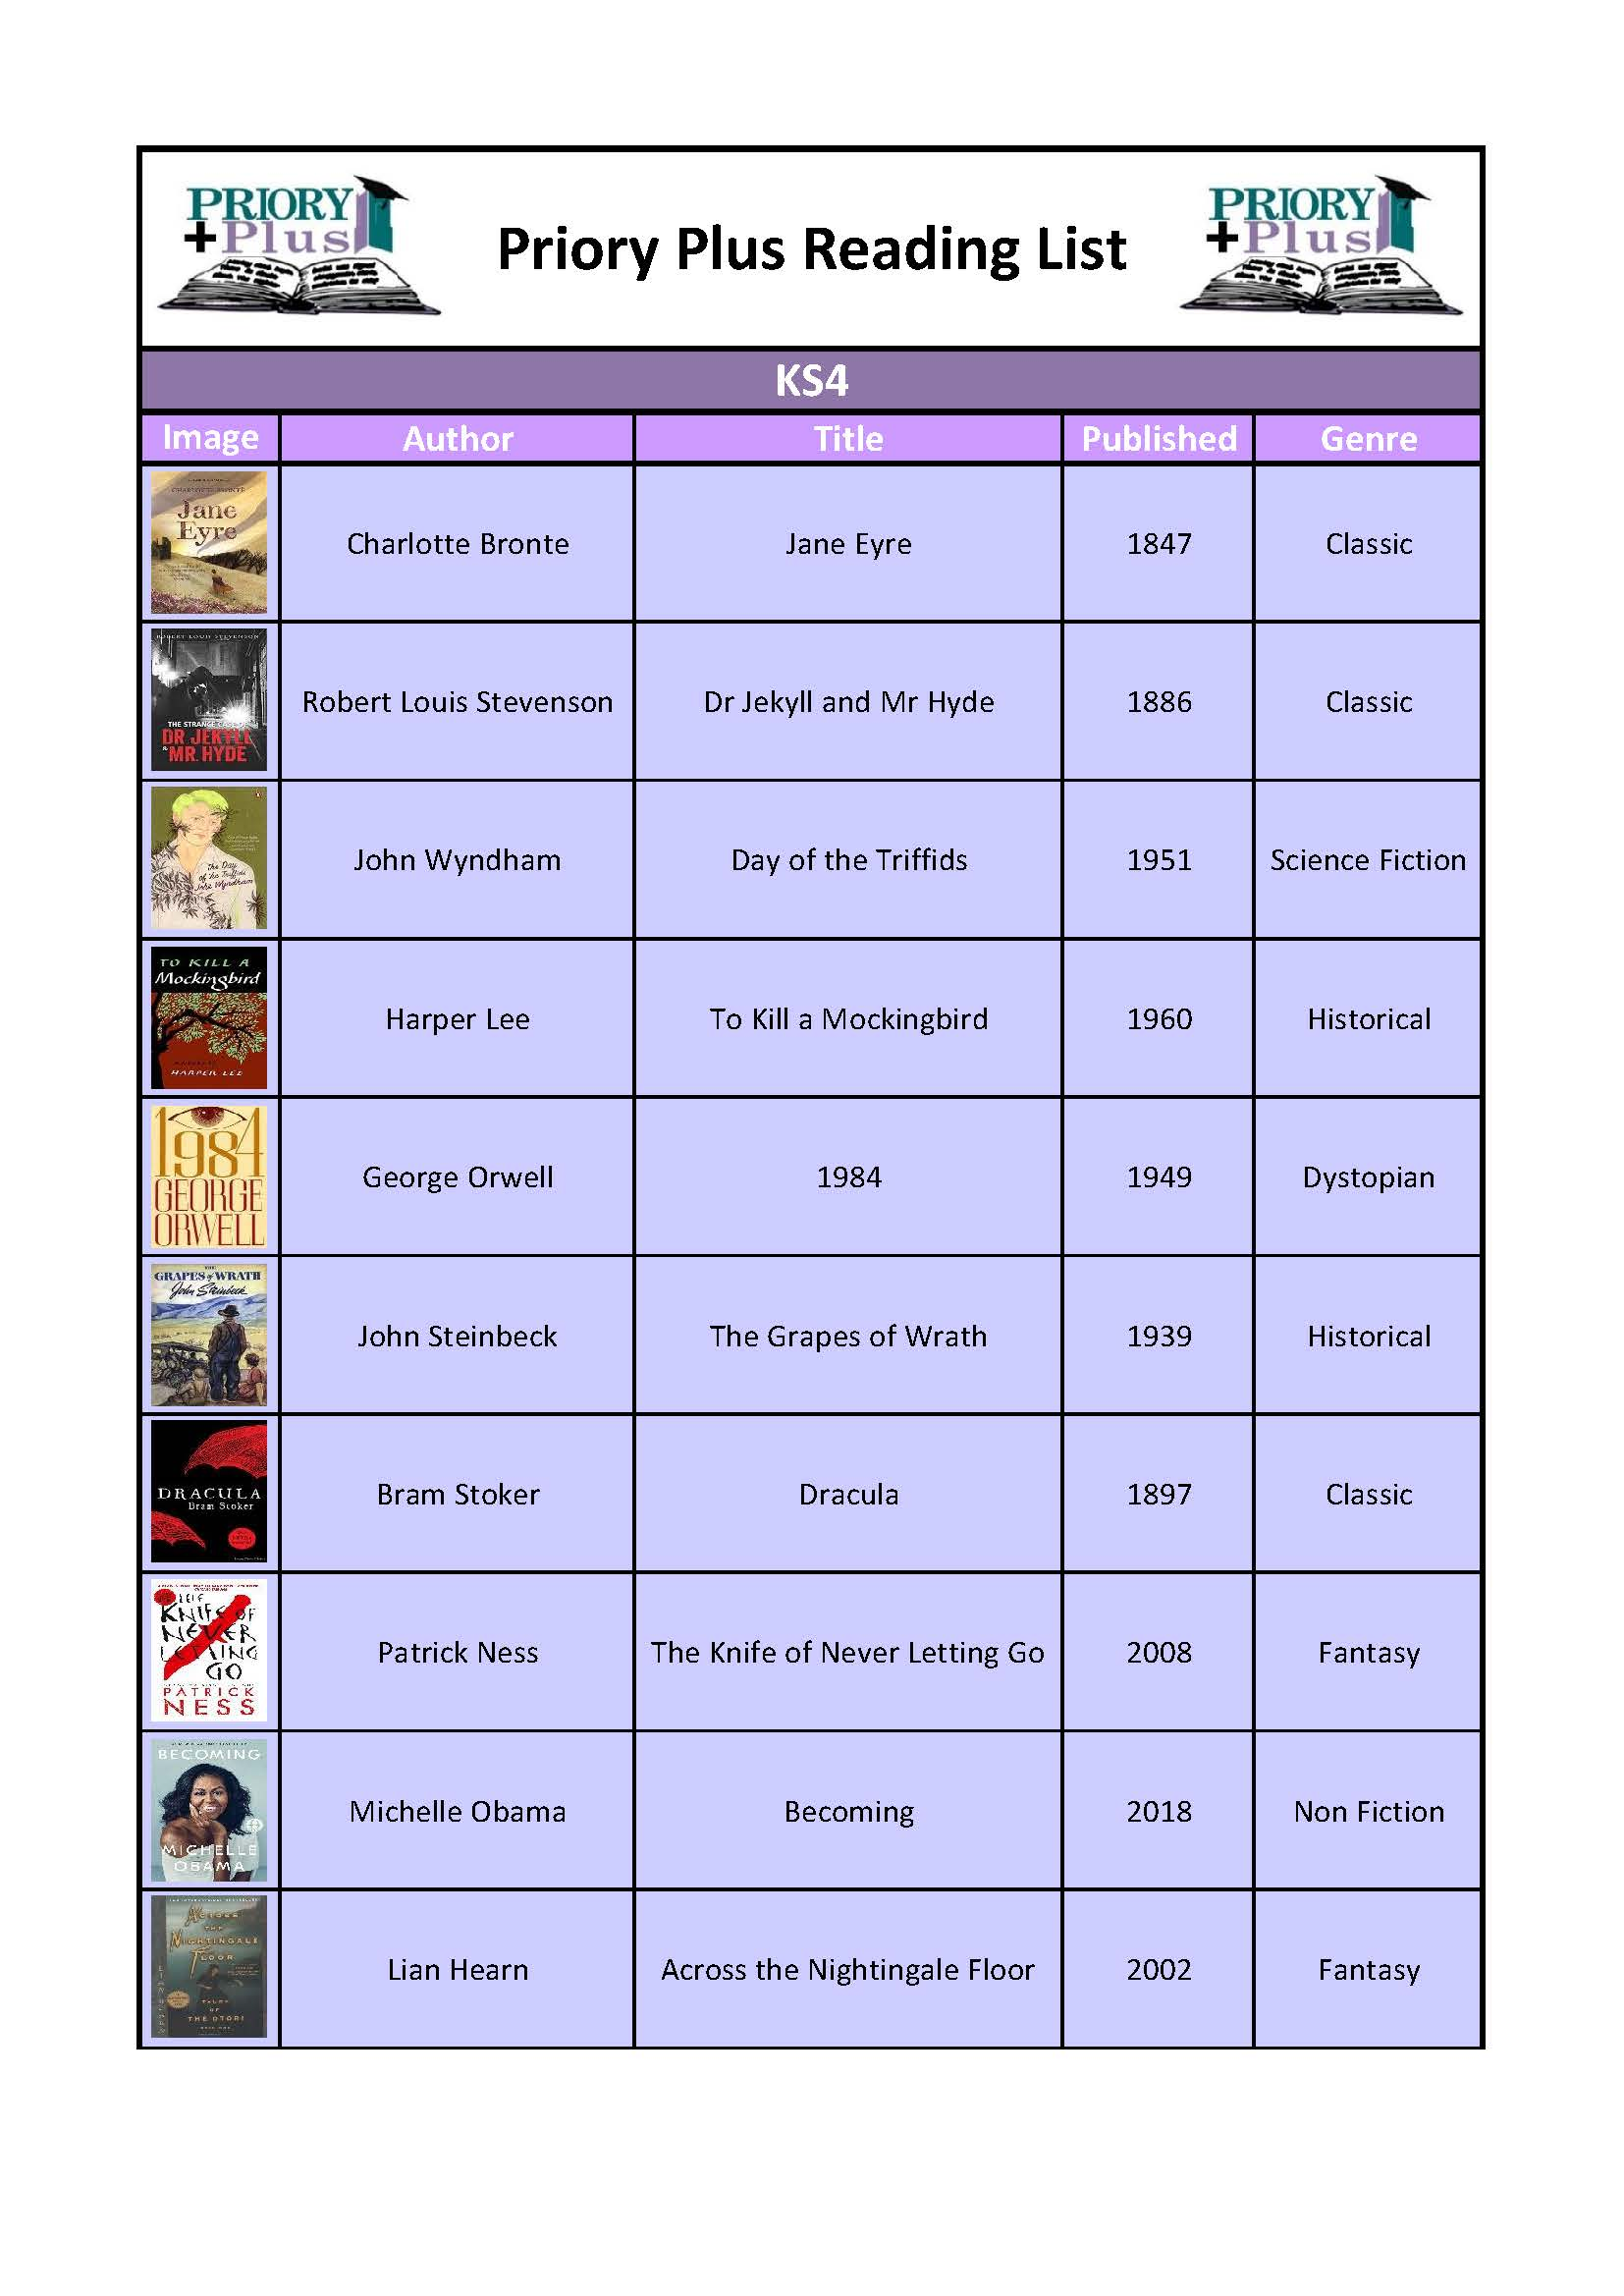 Priory Plus Reading List with images KS4_Page_1.jpg